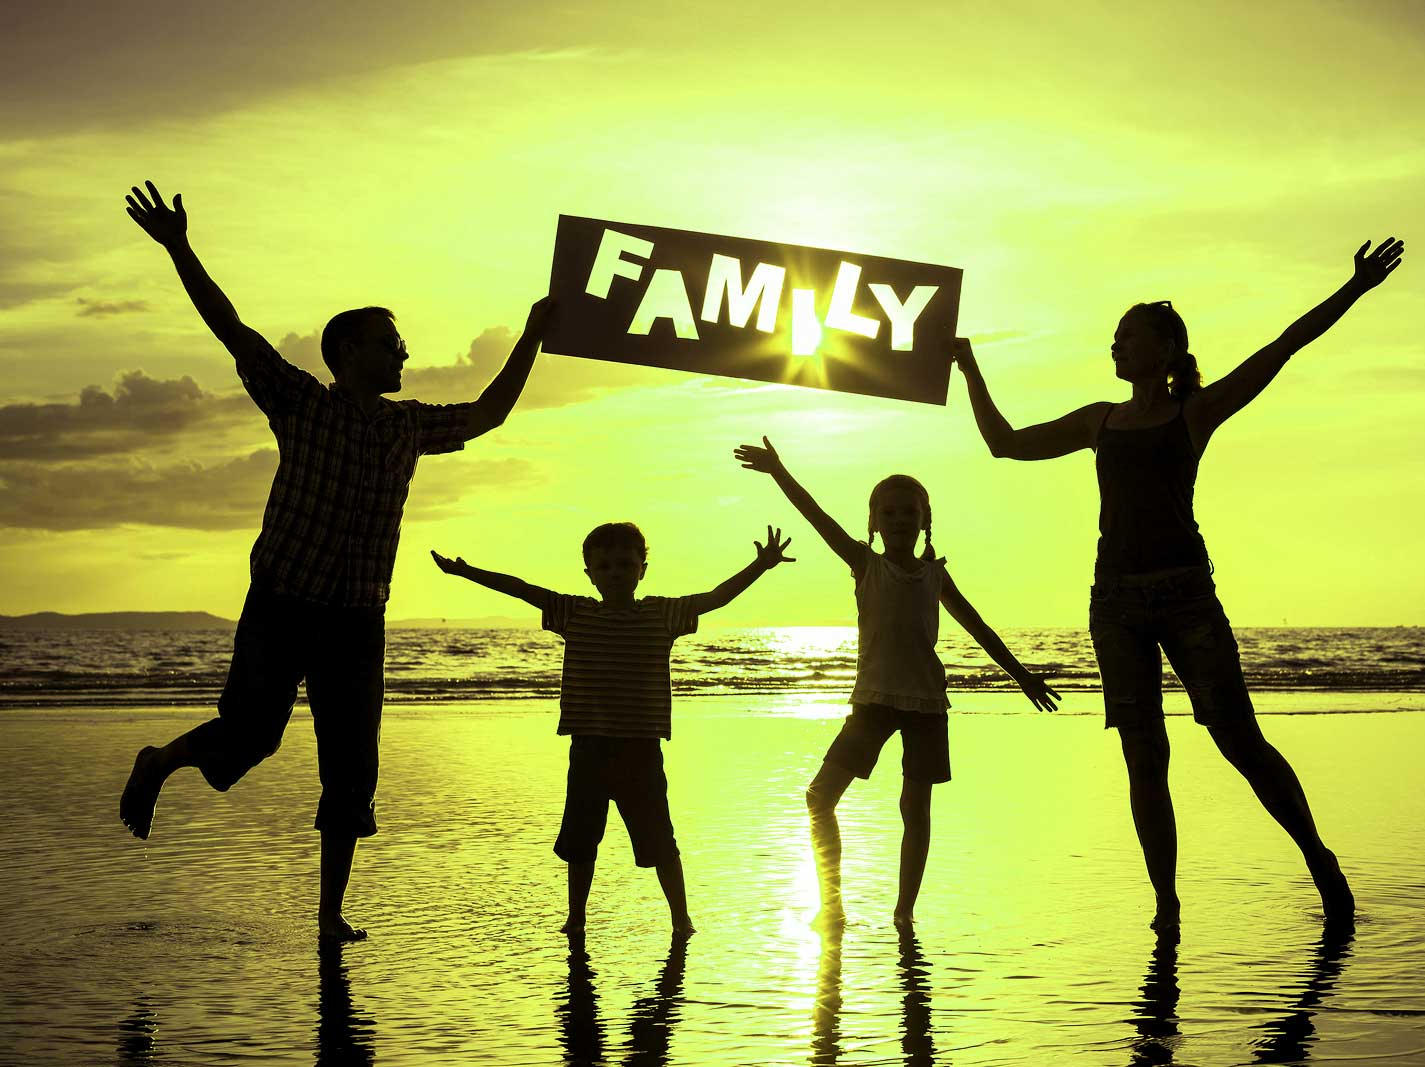 New Family Group Whatsapp DP Images Pictures